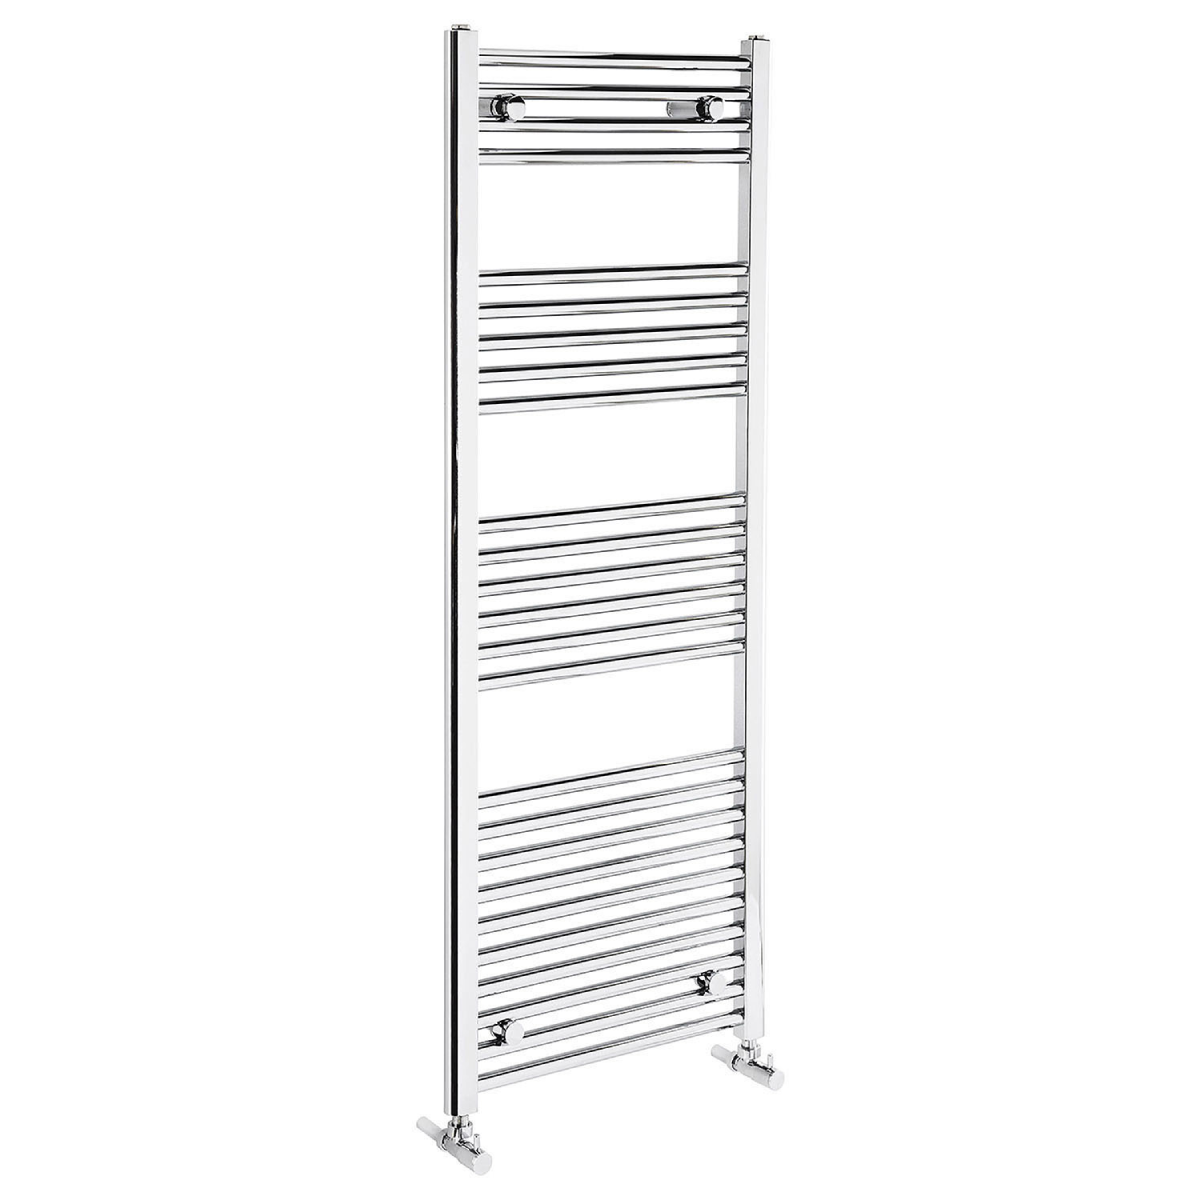 Frontline Flat Chrome Heated Towel Rail With Multiple Hanging Areas W500 H1350